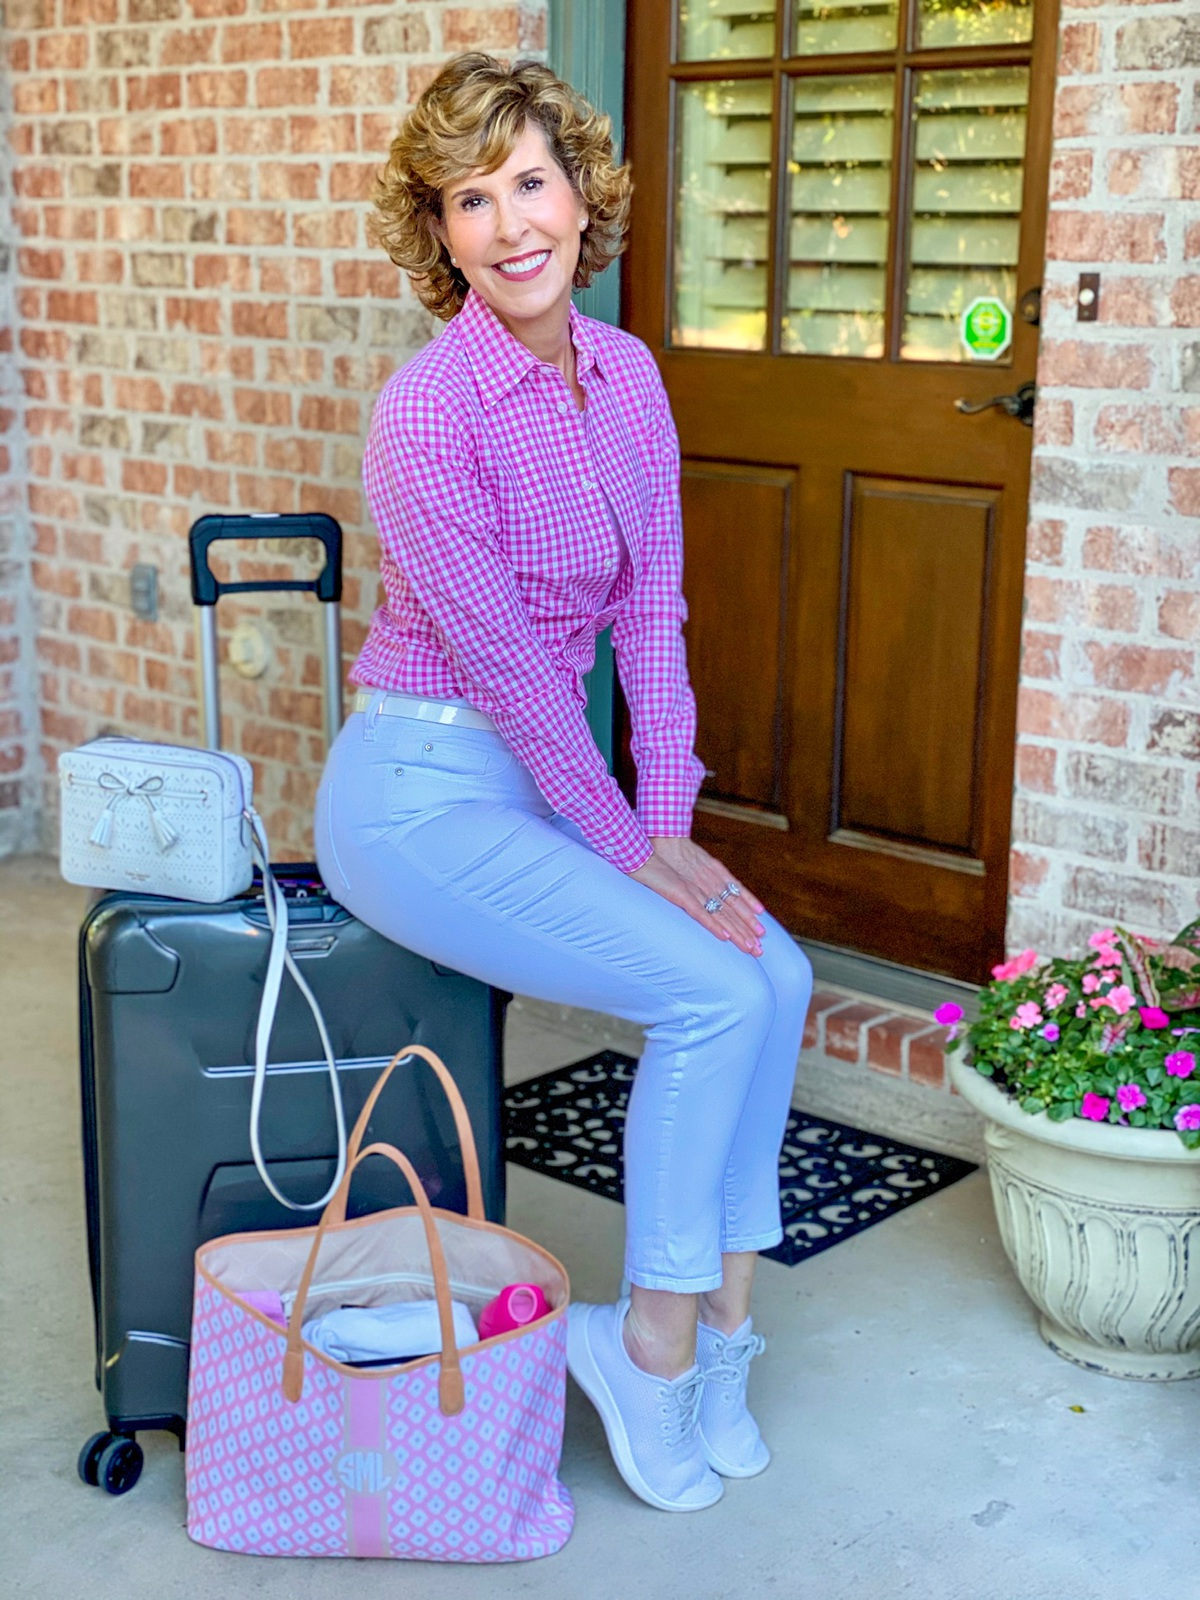 woman in pink gingham shirt sitting on a suitcase